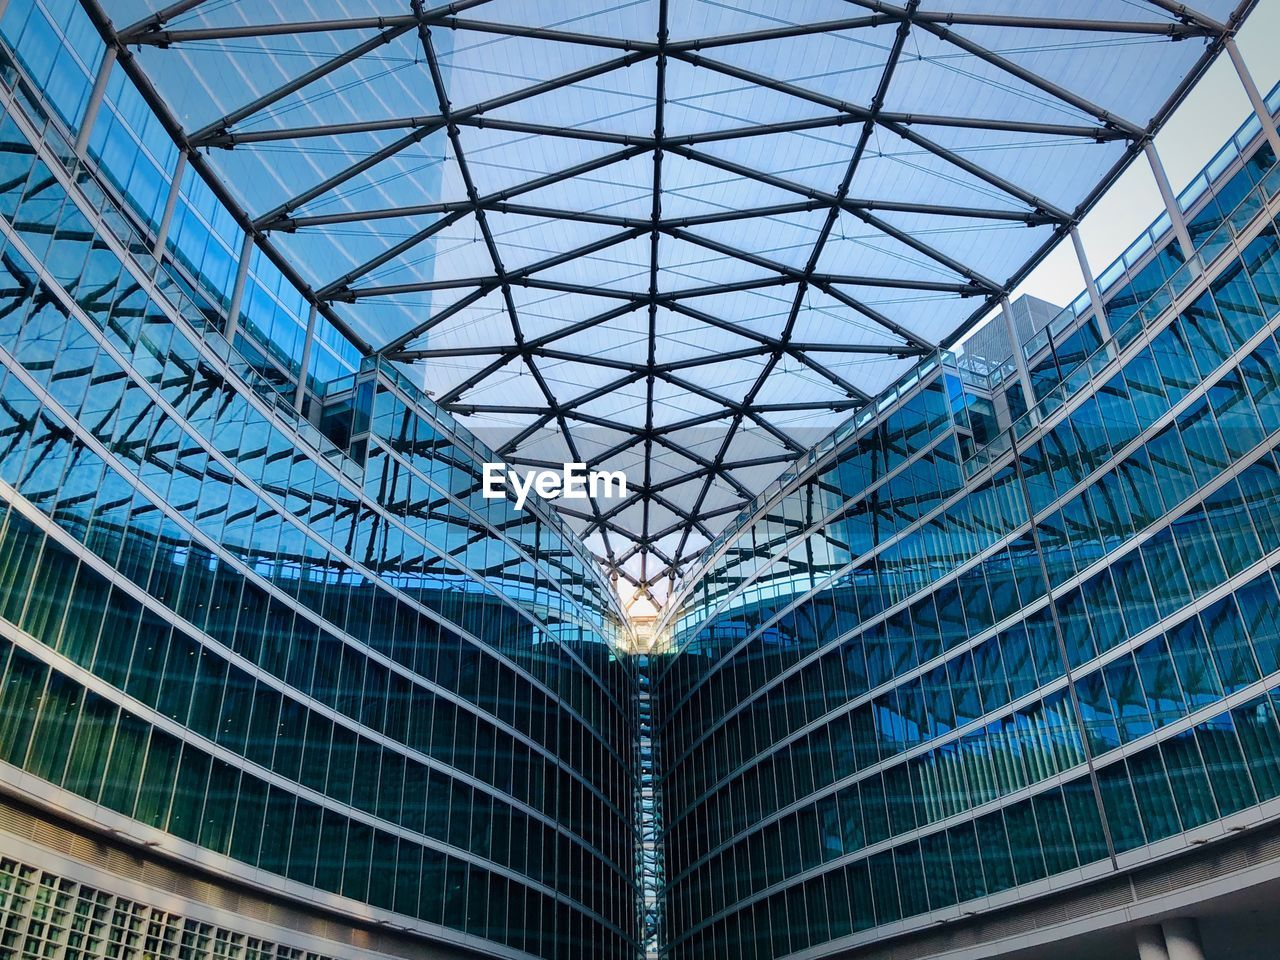 architecture, built structure, city, building exterior, glass - material, modern, no people, building, pattern, day, blue, ceiling, low angle view, sky, full frame, office building exterior, symmetry, metal, outdoors, skyscraper, glass, consumerism